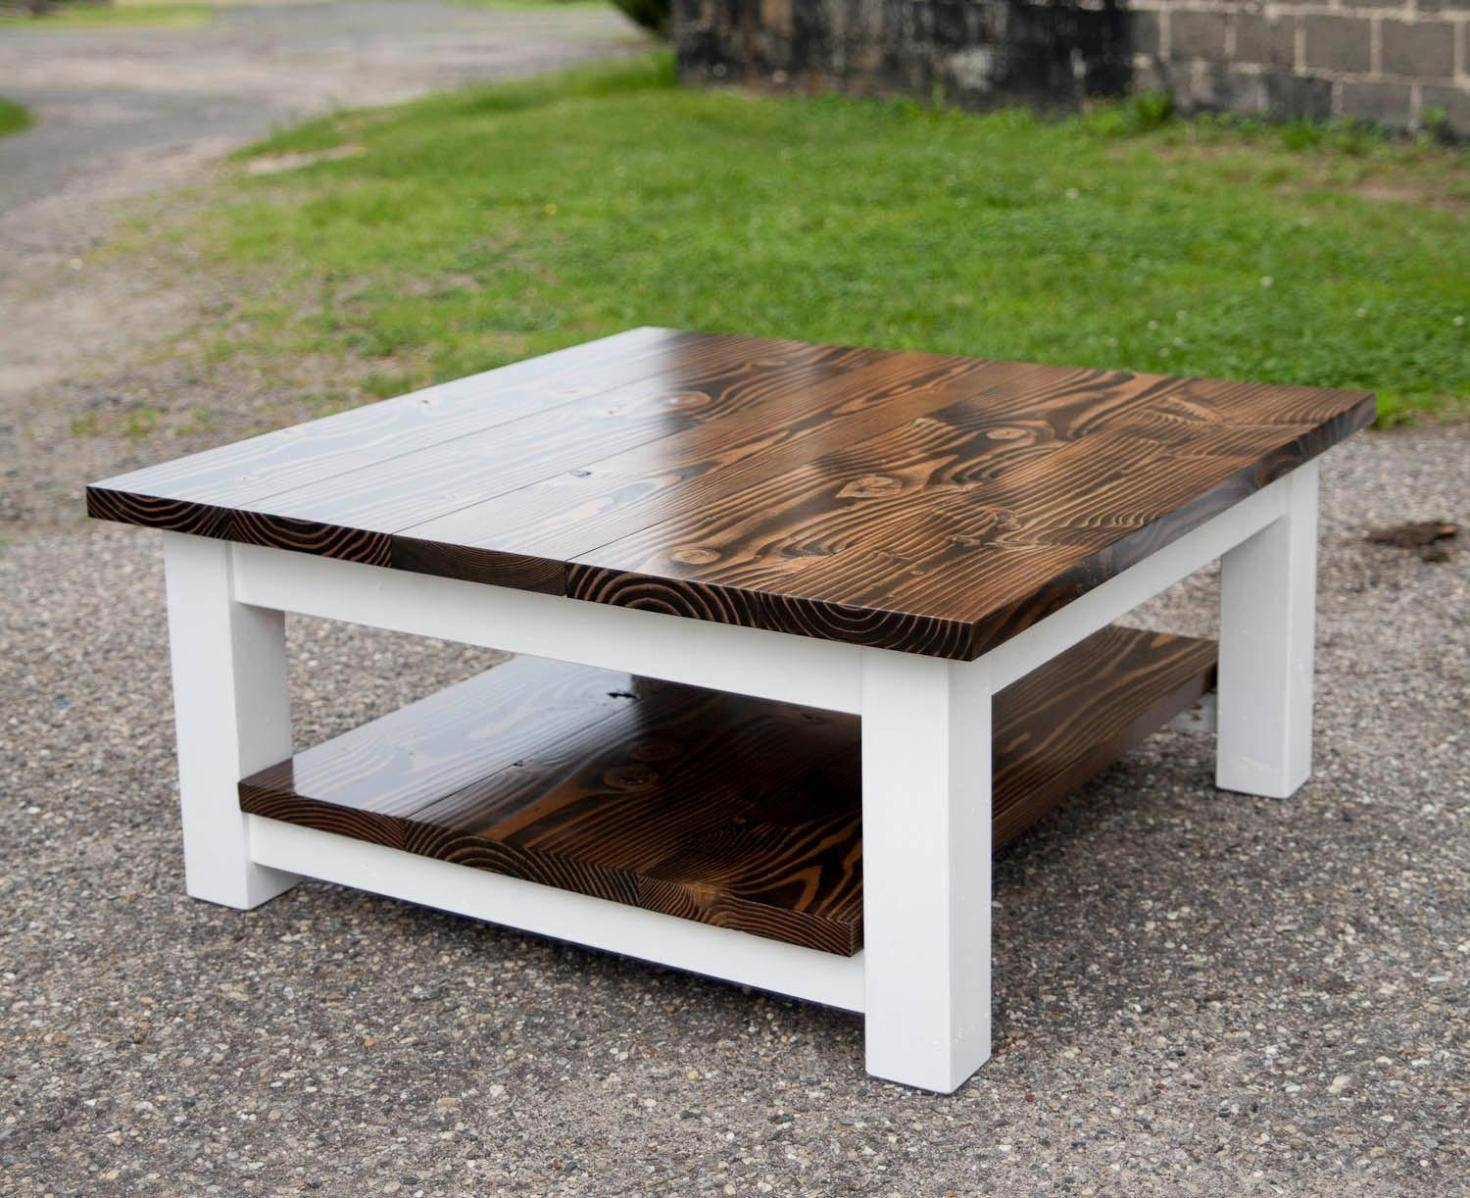 Dark Square Coffee Tables - Functional Square Coffee Tables for Square Large Coffee Tables (Image 14 of 30)